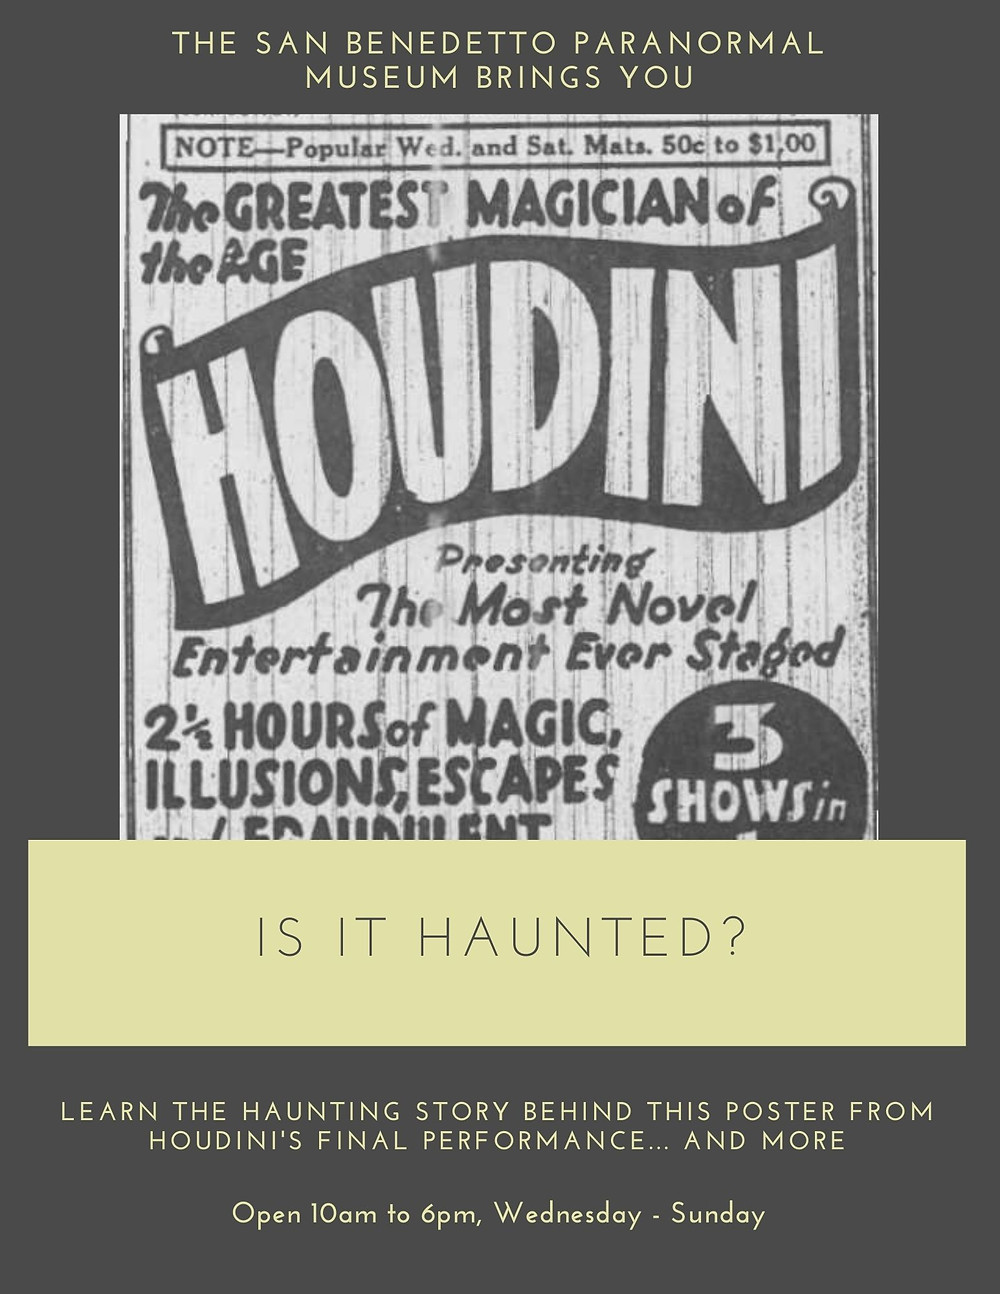 The San Benedetto Paranormal Museum Brings You...  an original Houdini poster. Is it haunted? Learn the haunting history of this poster from Houdini's final, deadly show and more. Open 10 AM to 6 PM, Wednesday through Sunday.